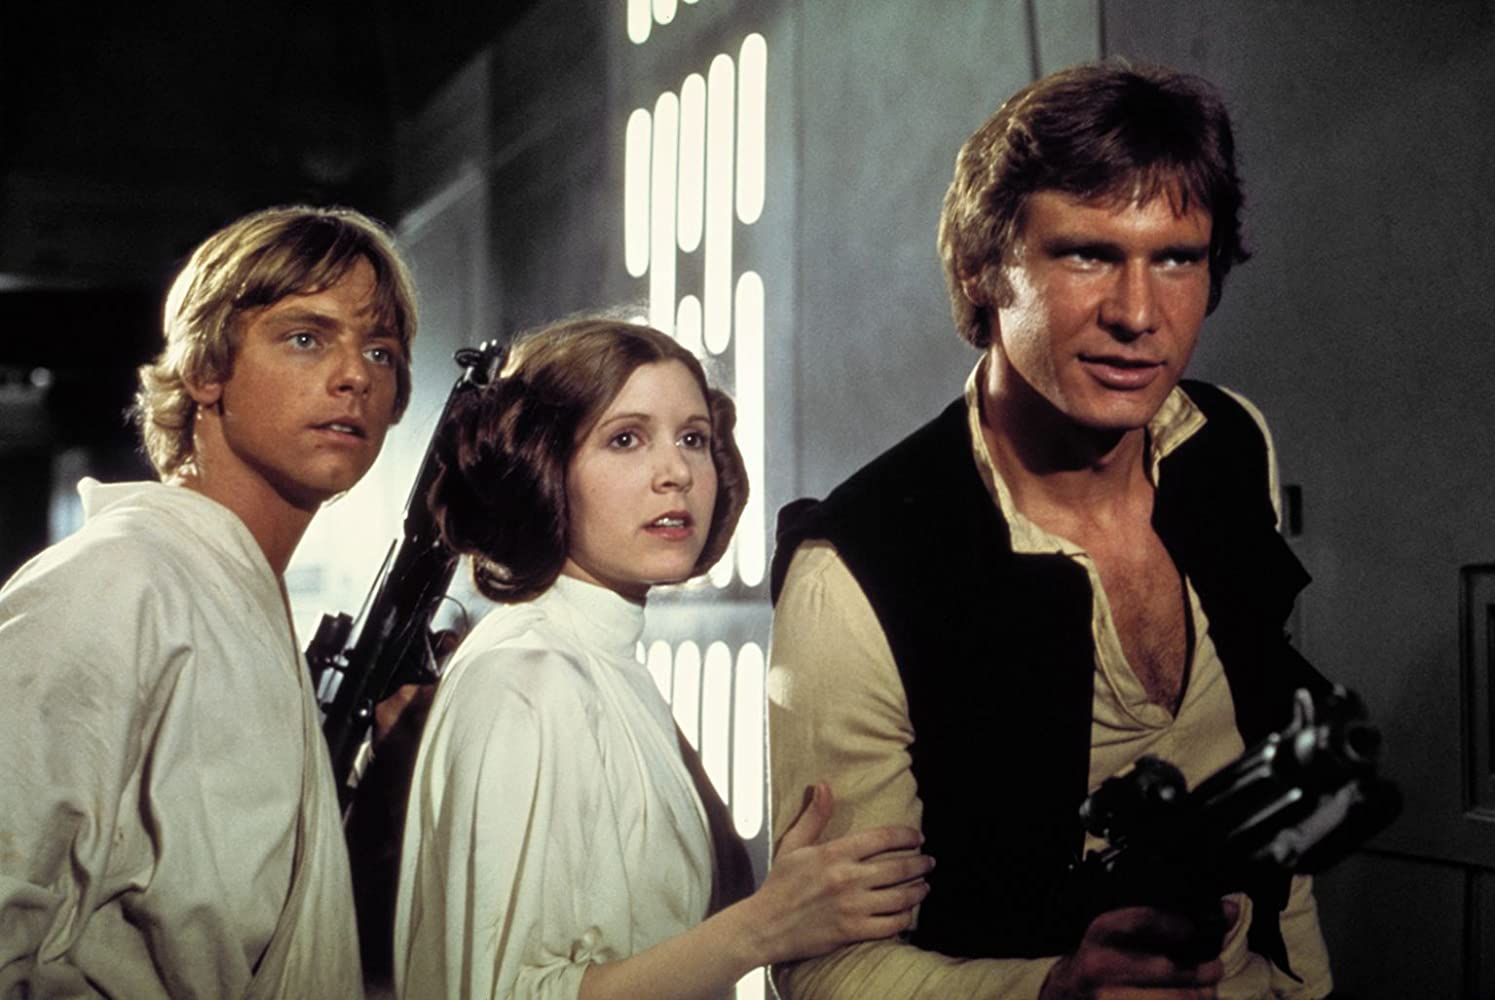 Harrison Ford, Carrie Fisher, and Mark Hamill in Star Wars (1977)